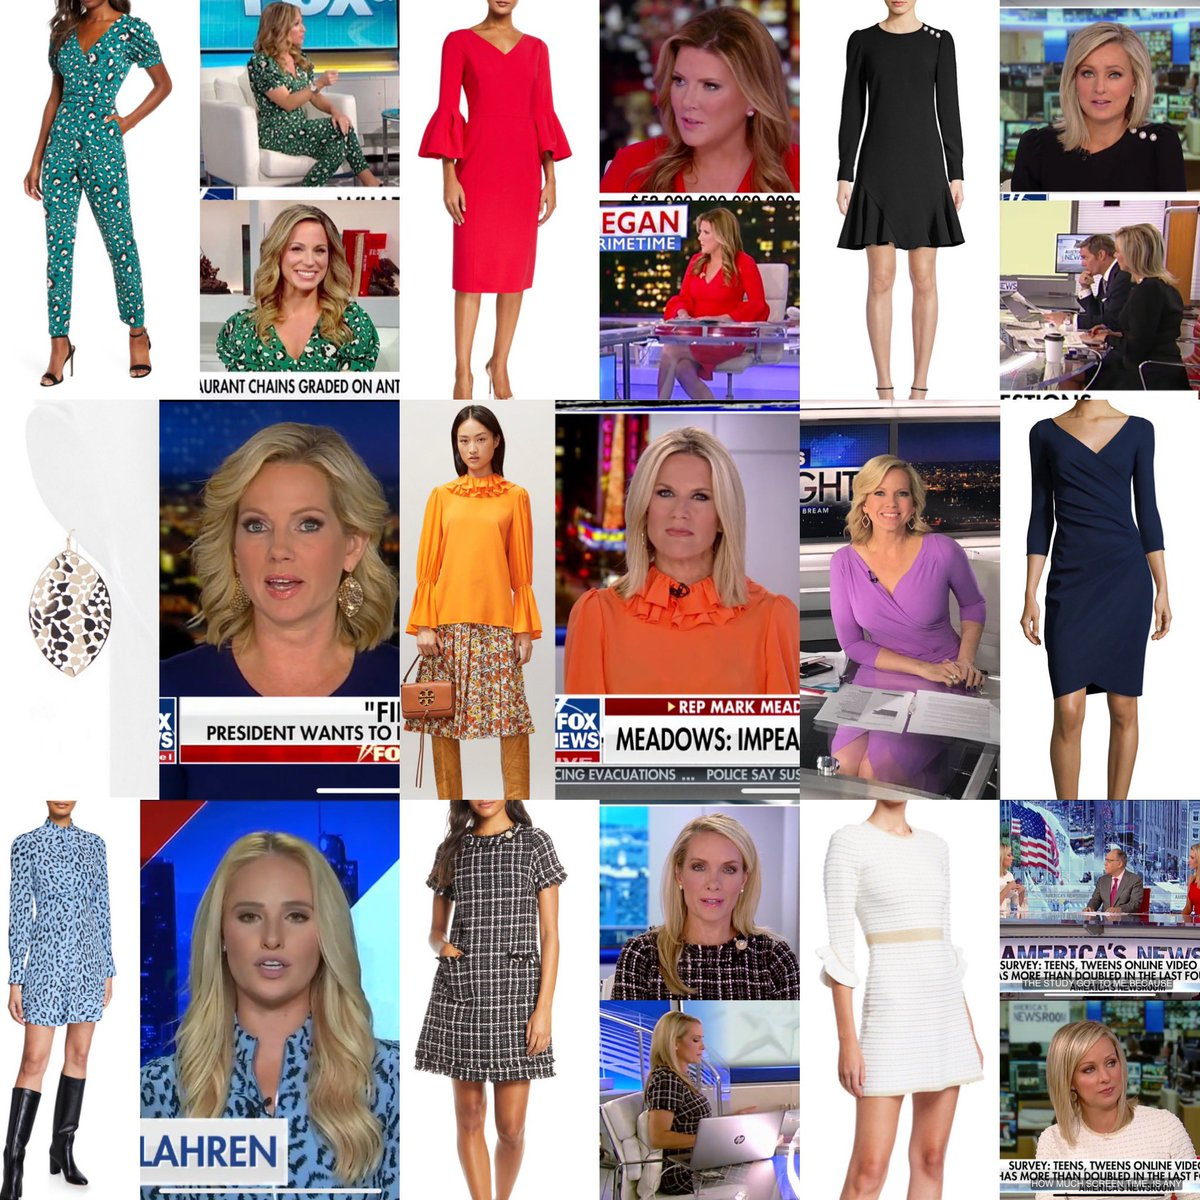 Some of my favorite looks worn on Fox this week are still available! Visit the blog for all the details!  https://foxnews.fashion.blog/anchors/  #foxnews #foxnewsfashion pic.twitter.com/nzlAaXzAOu